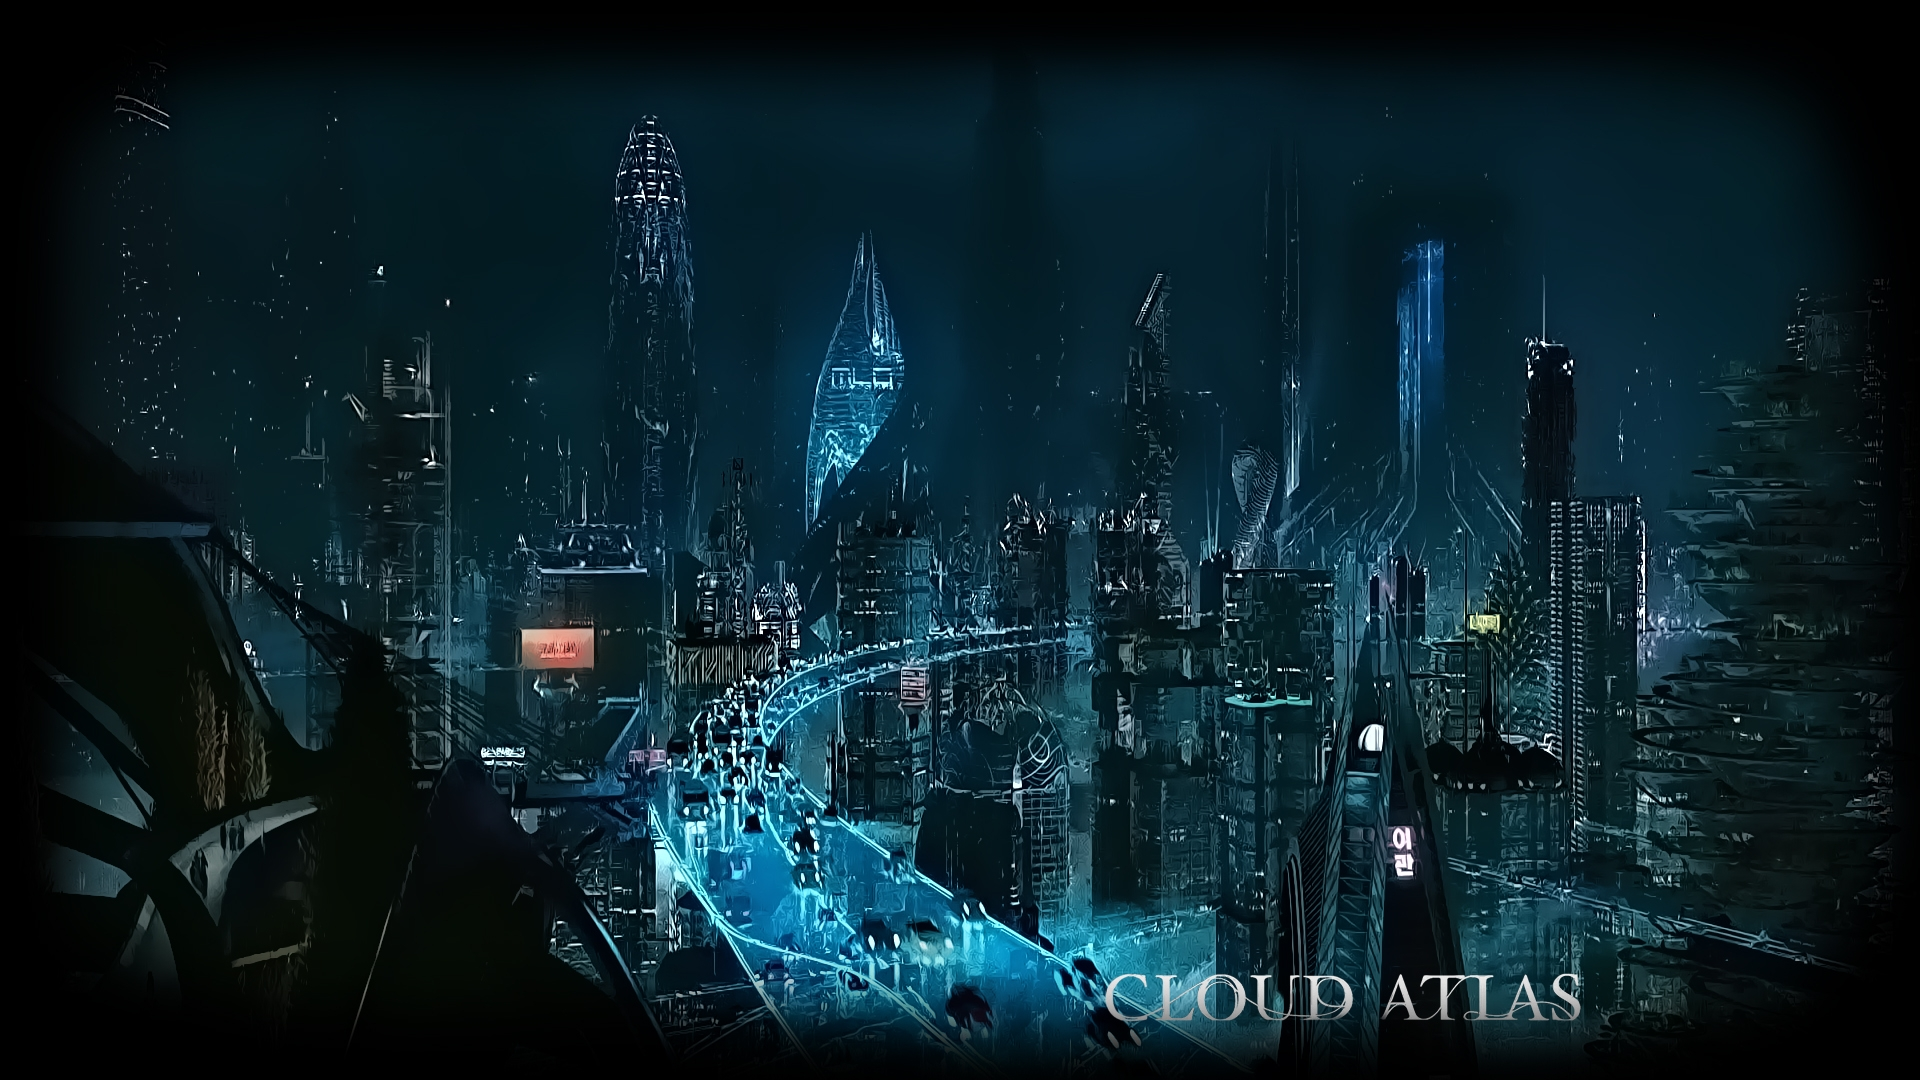 What We Talk About When We Talk About Cloud Atlas u00ab The ...